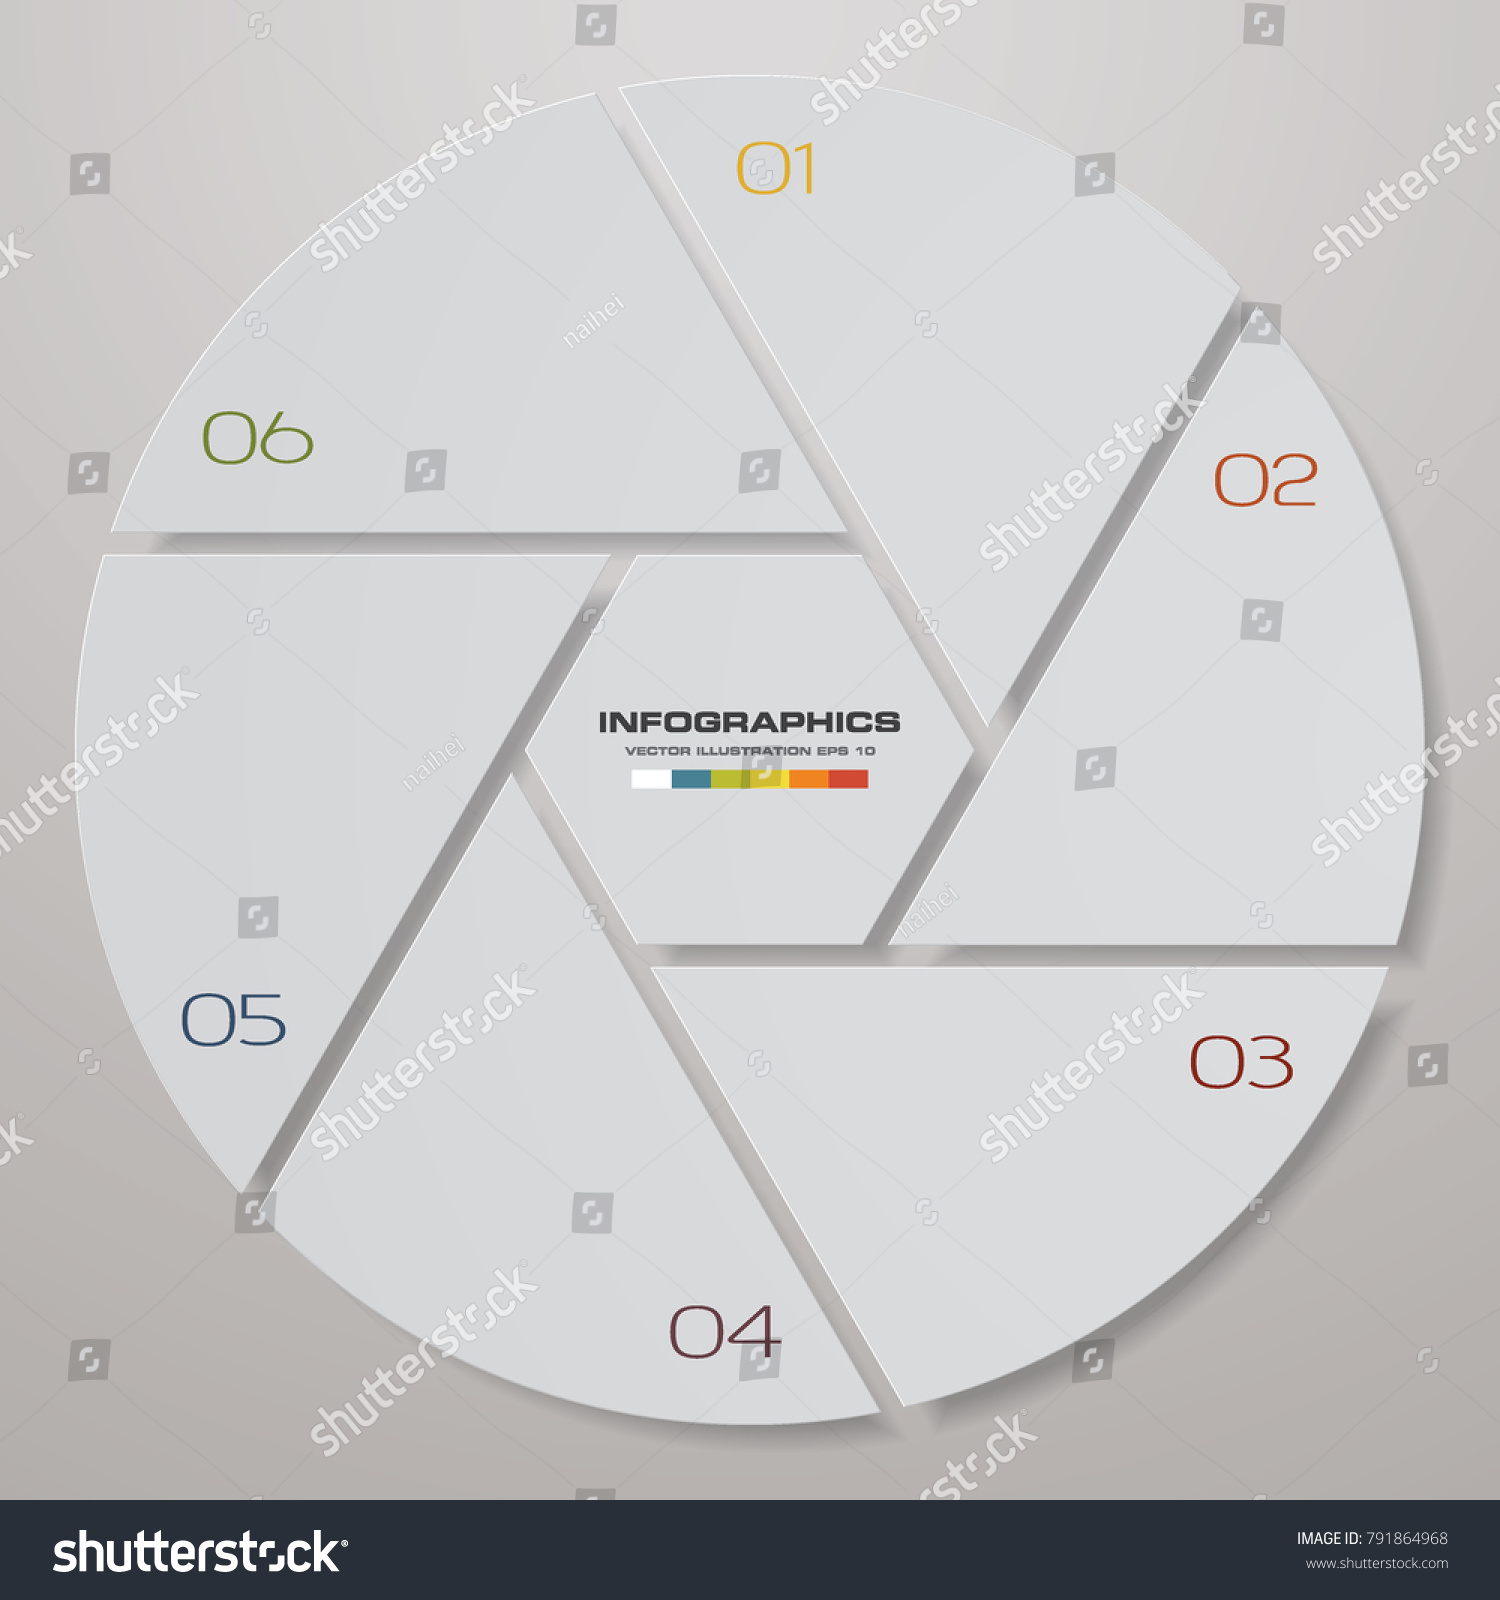 12 piece pie chart images free any chart examples 12 piece pie chart images free any chart examples 12 piece pie chart choice image free nvjuhfo Gallery